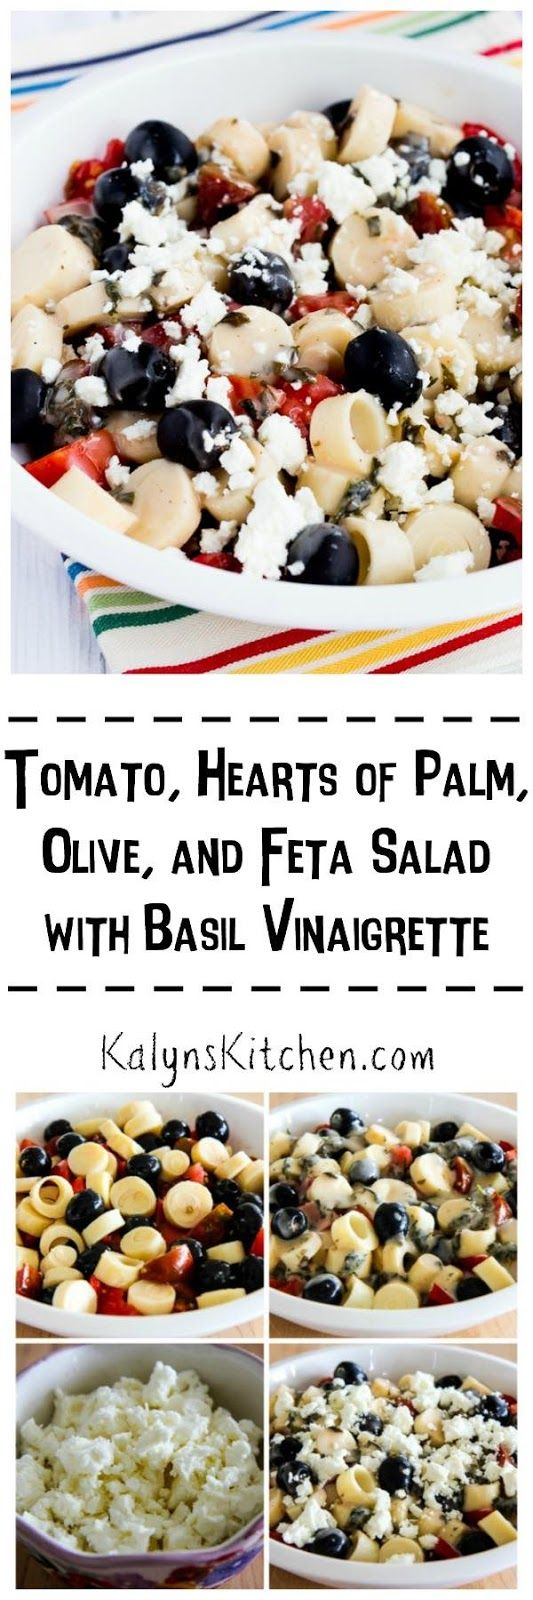 Make this Tomato, Hearts of Palm, Olive, and Feta Salad with Basil Vinaigrette…